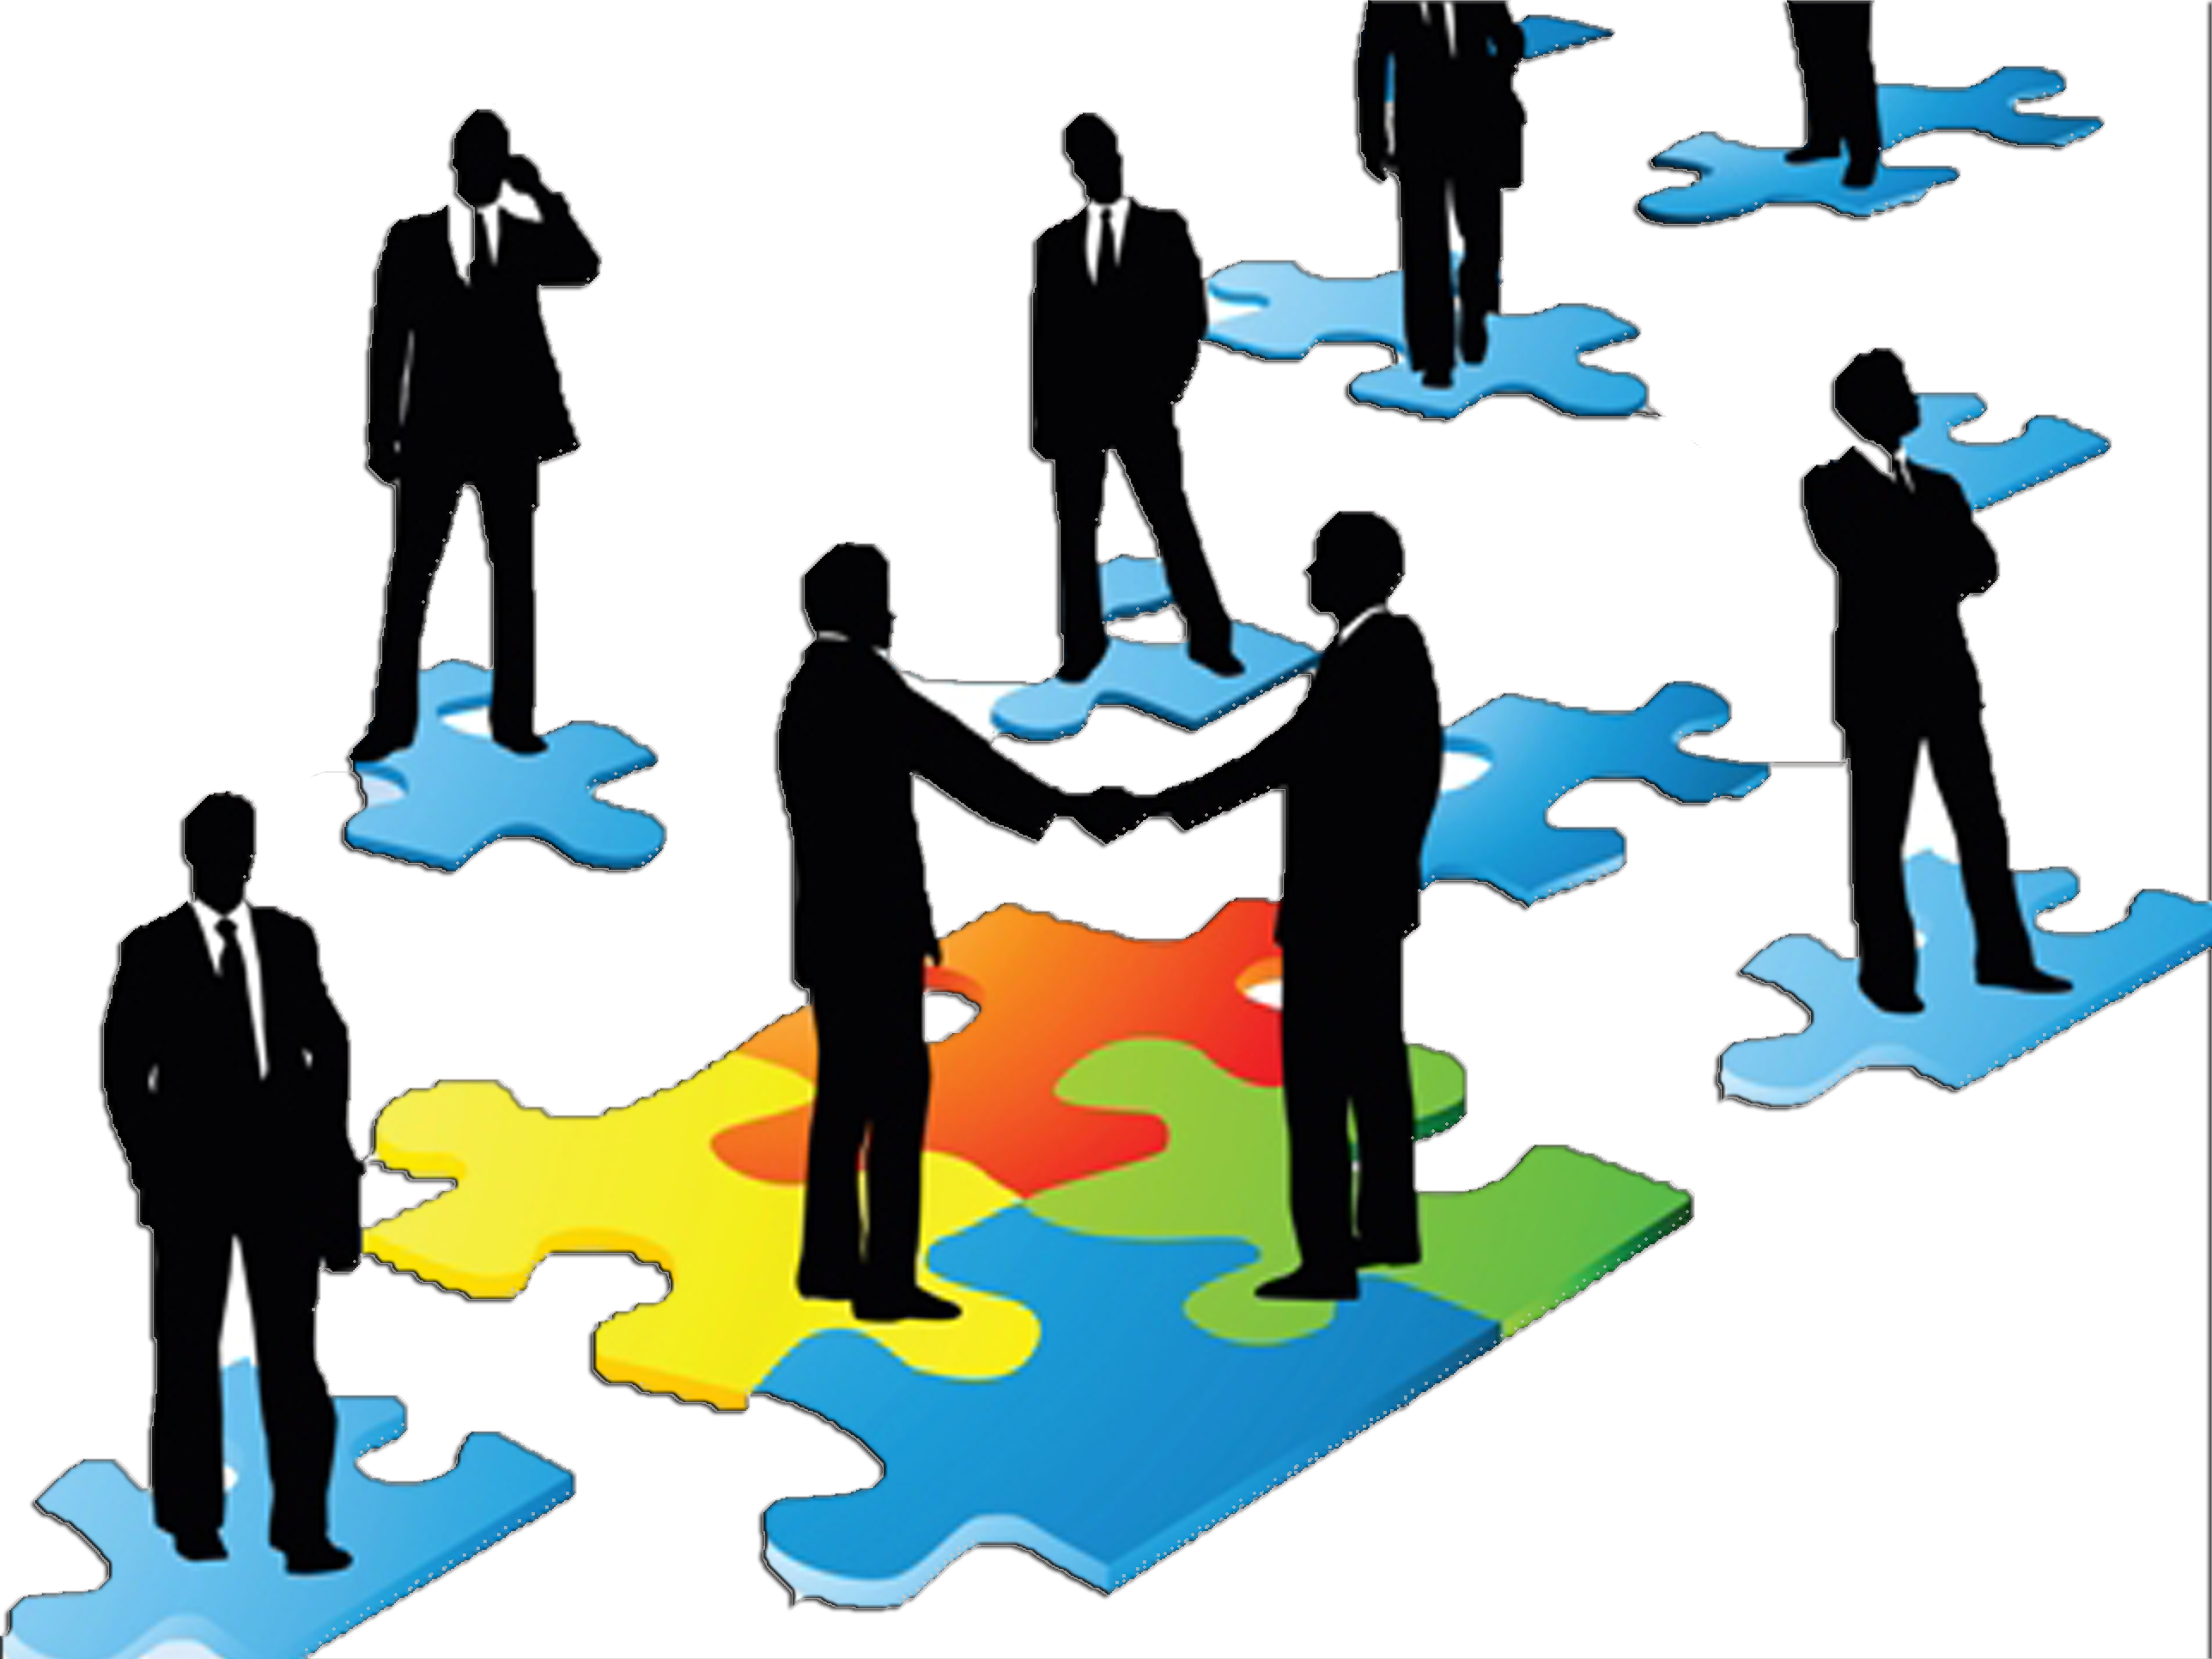 Collaboration business networking